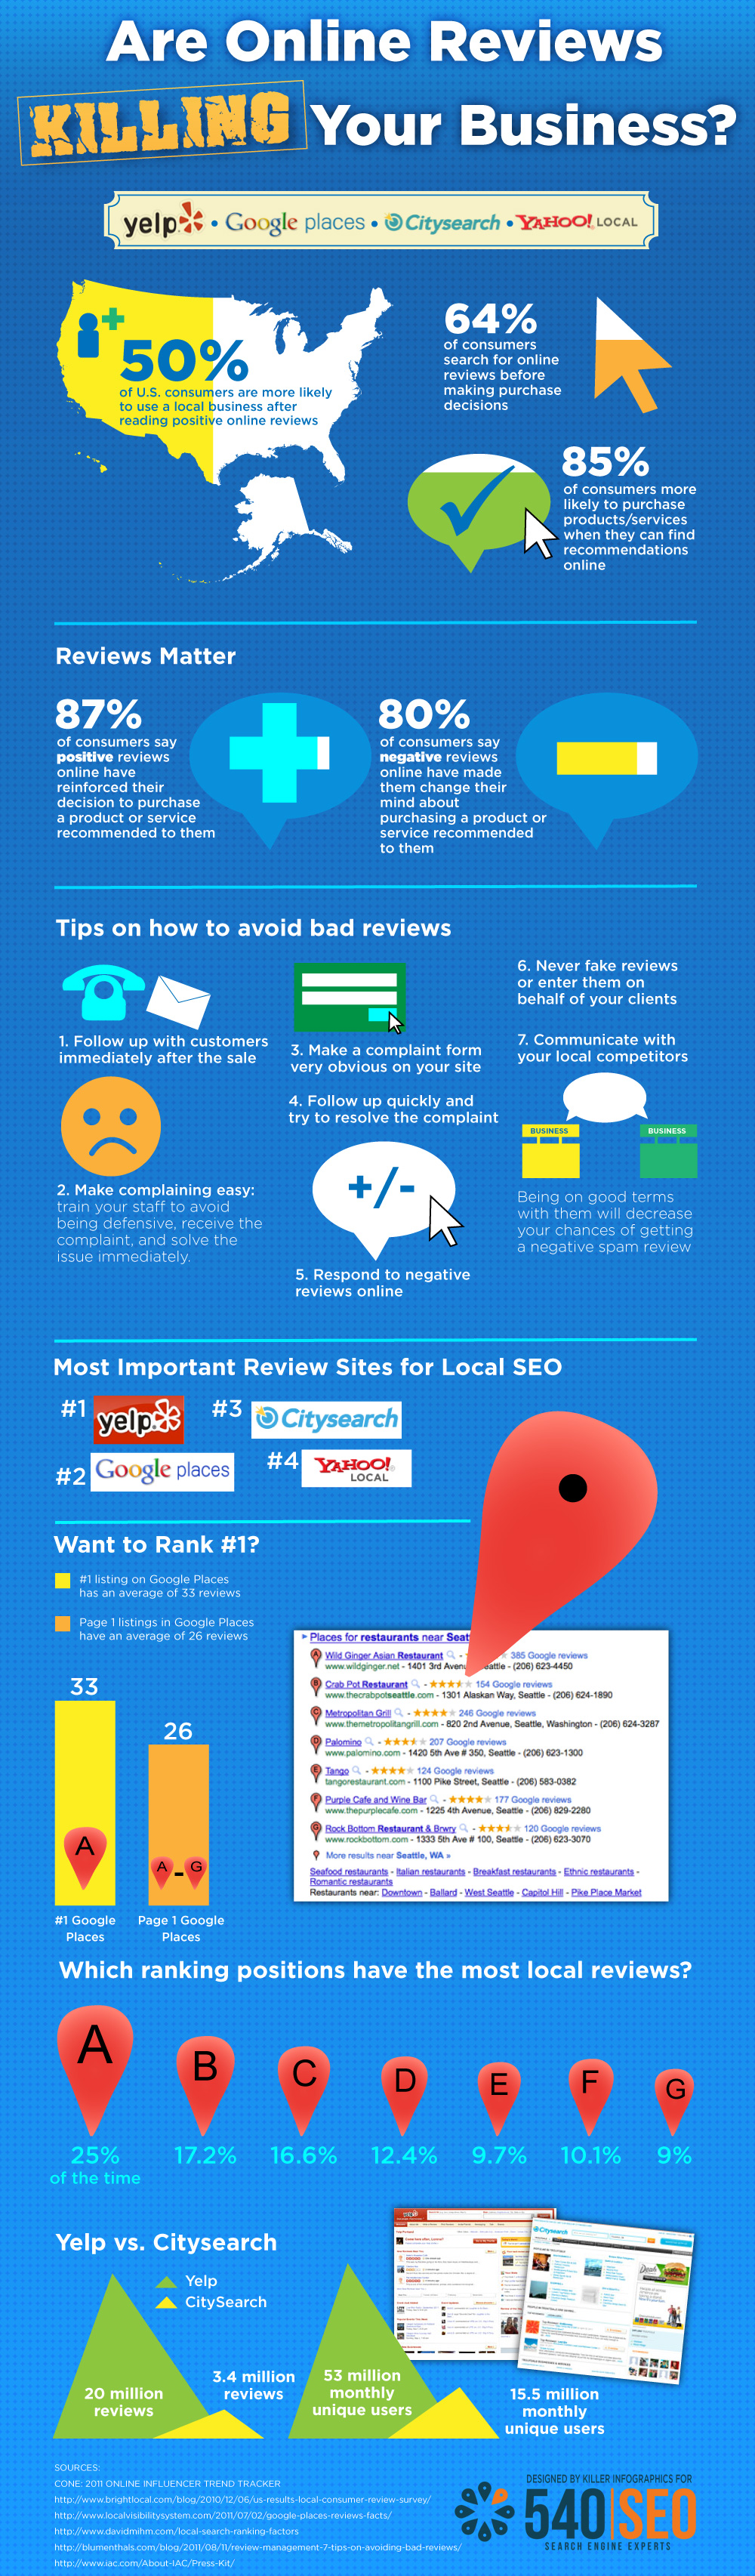 Online reviews killing your business - inforgraphic